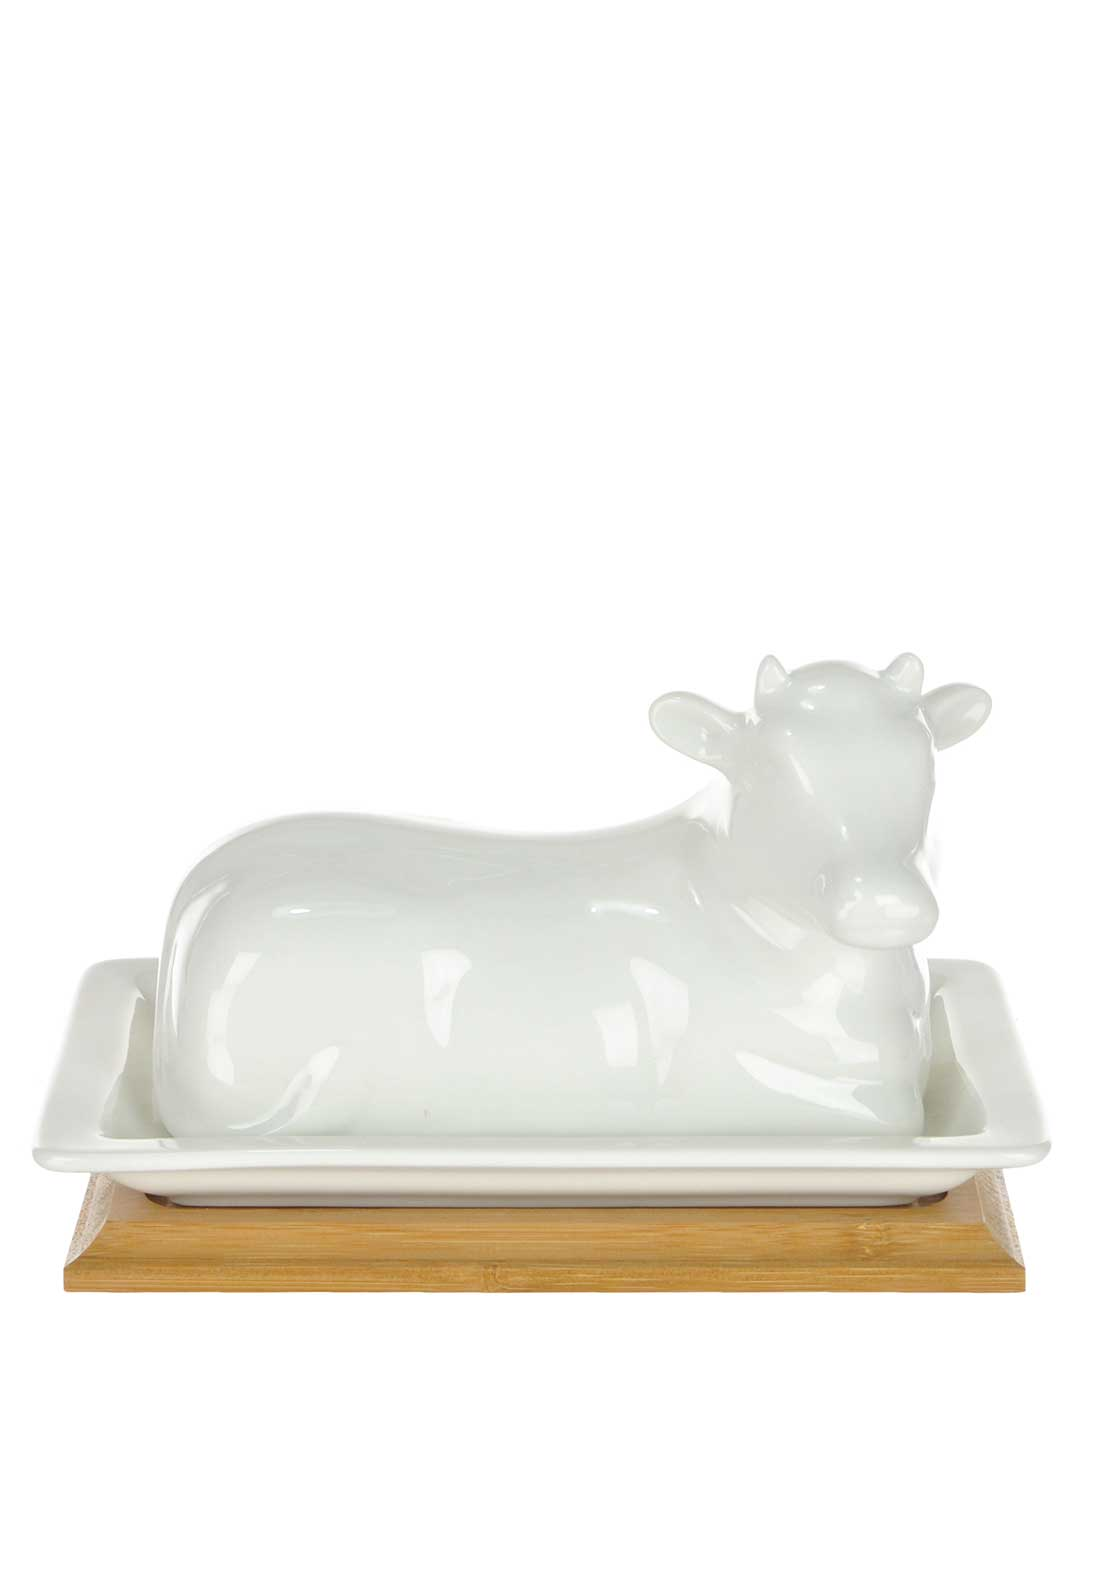 Slaneyside Pottery Cow Butter Dish, White